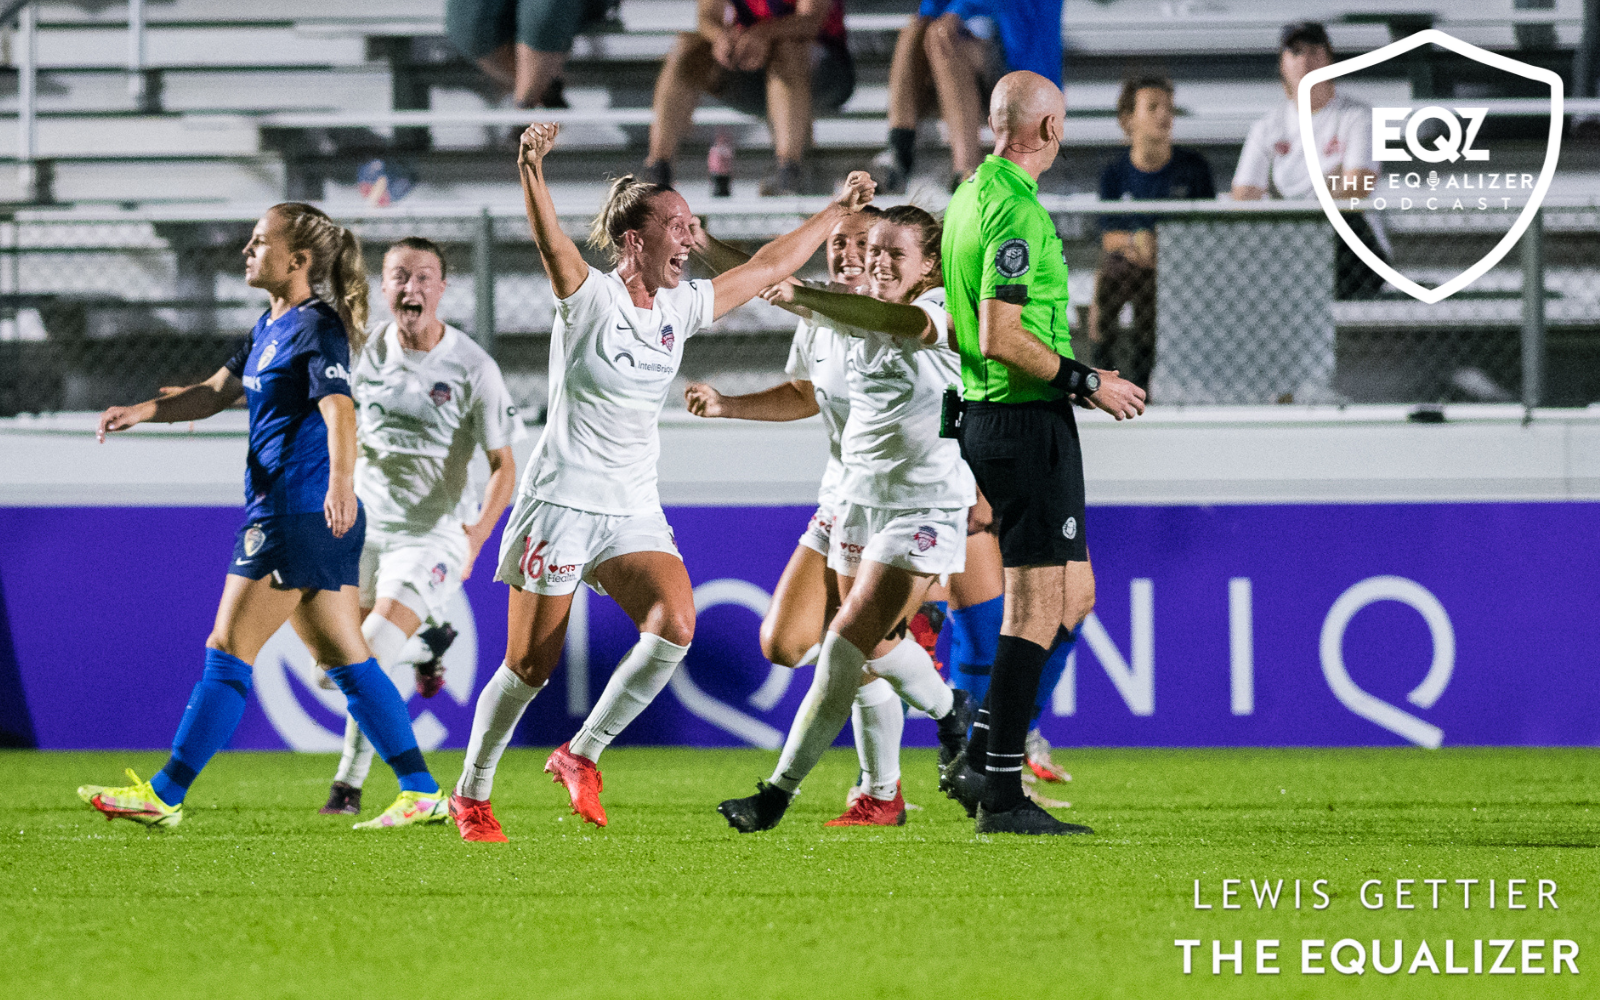 Washington Spirit players raise their arms in celebration after scoring a goal in North Carolina